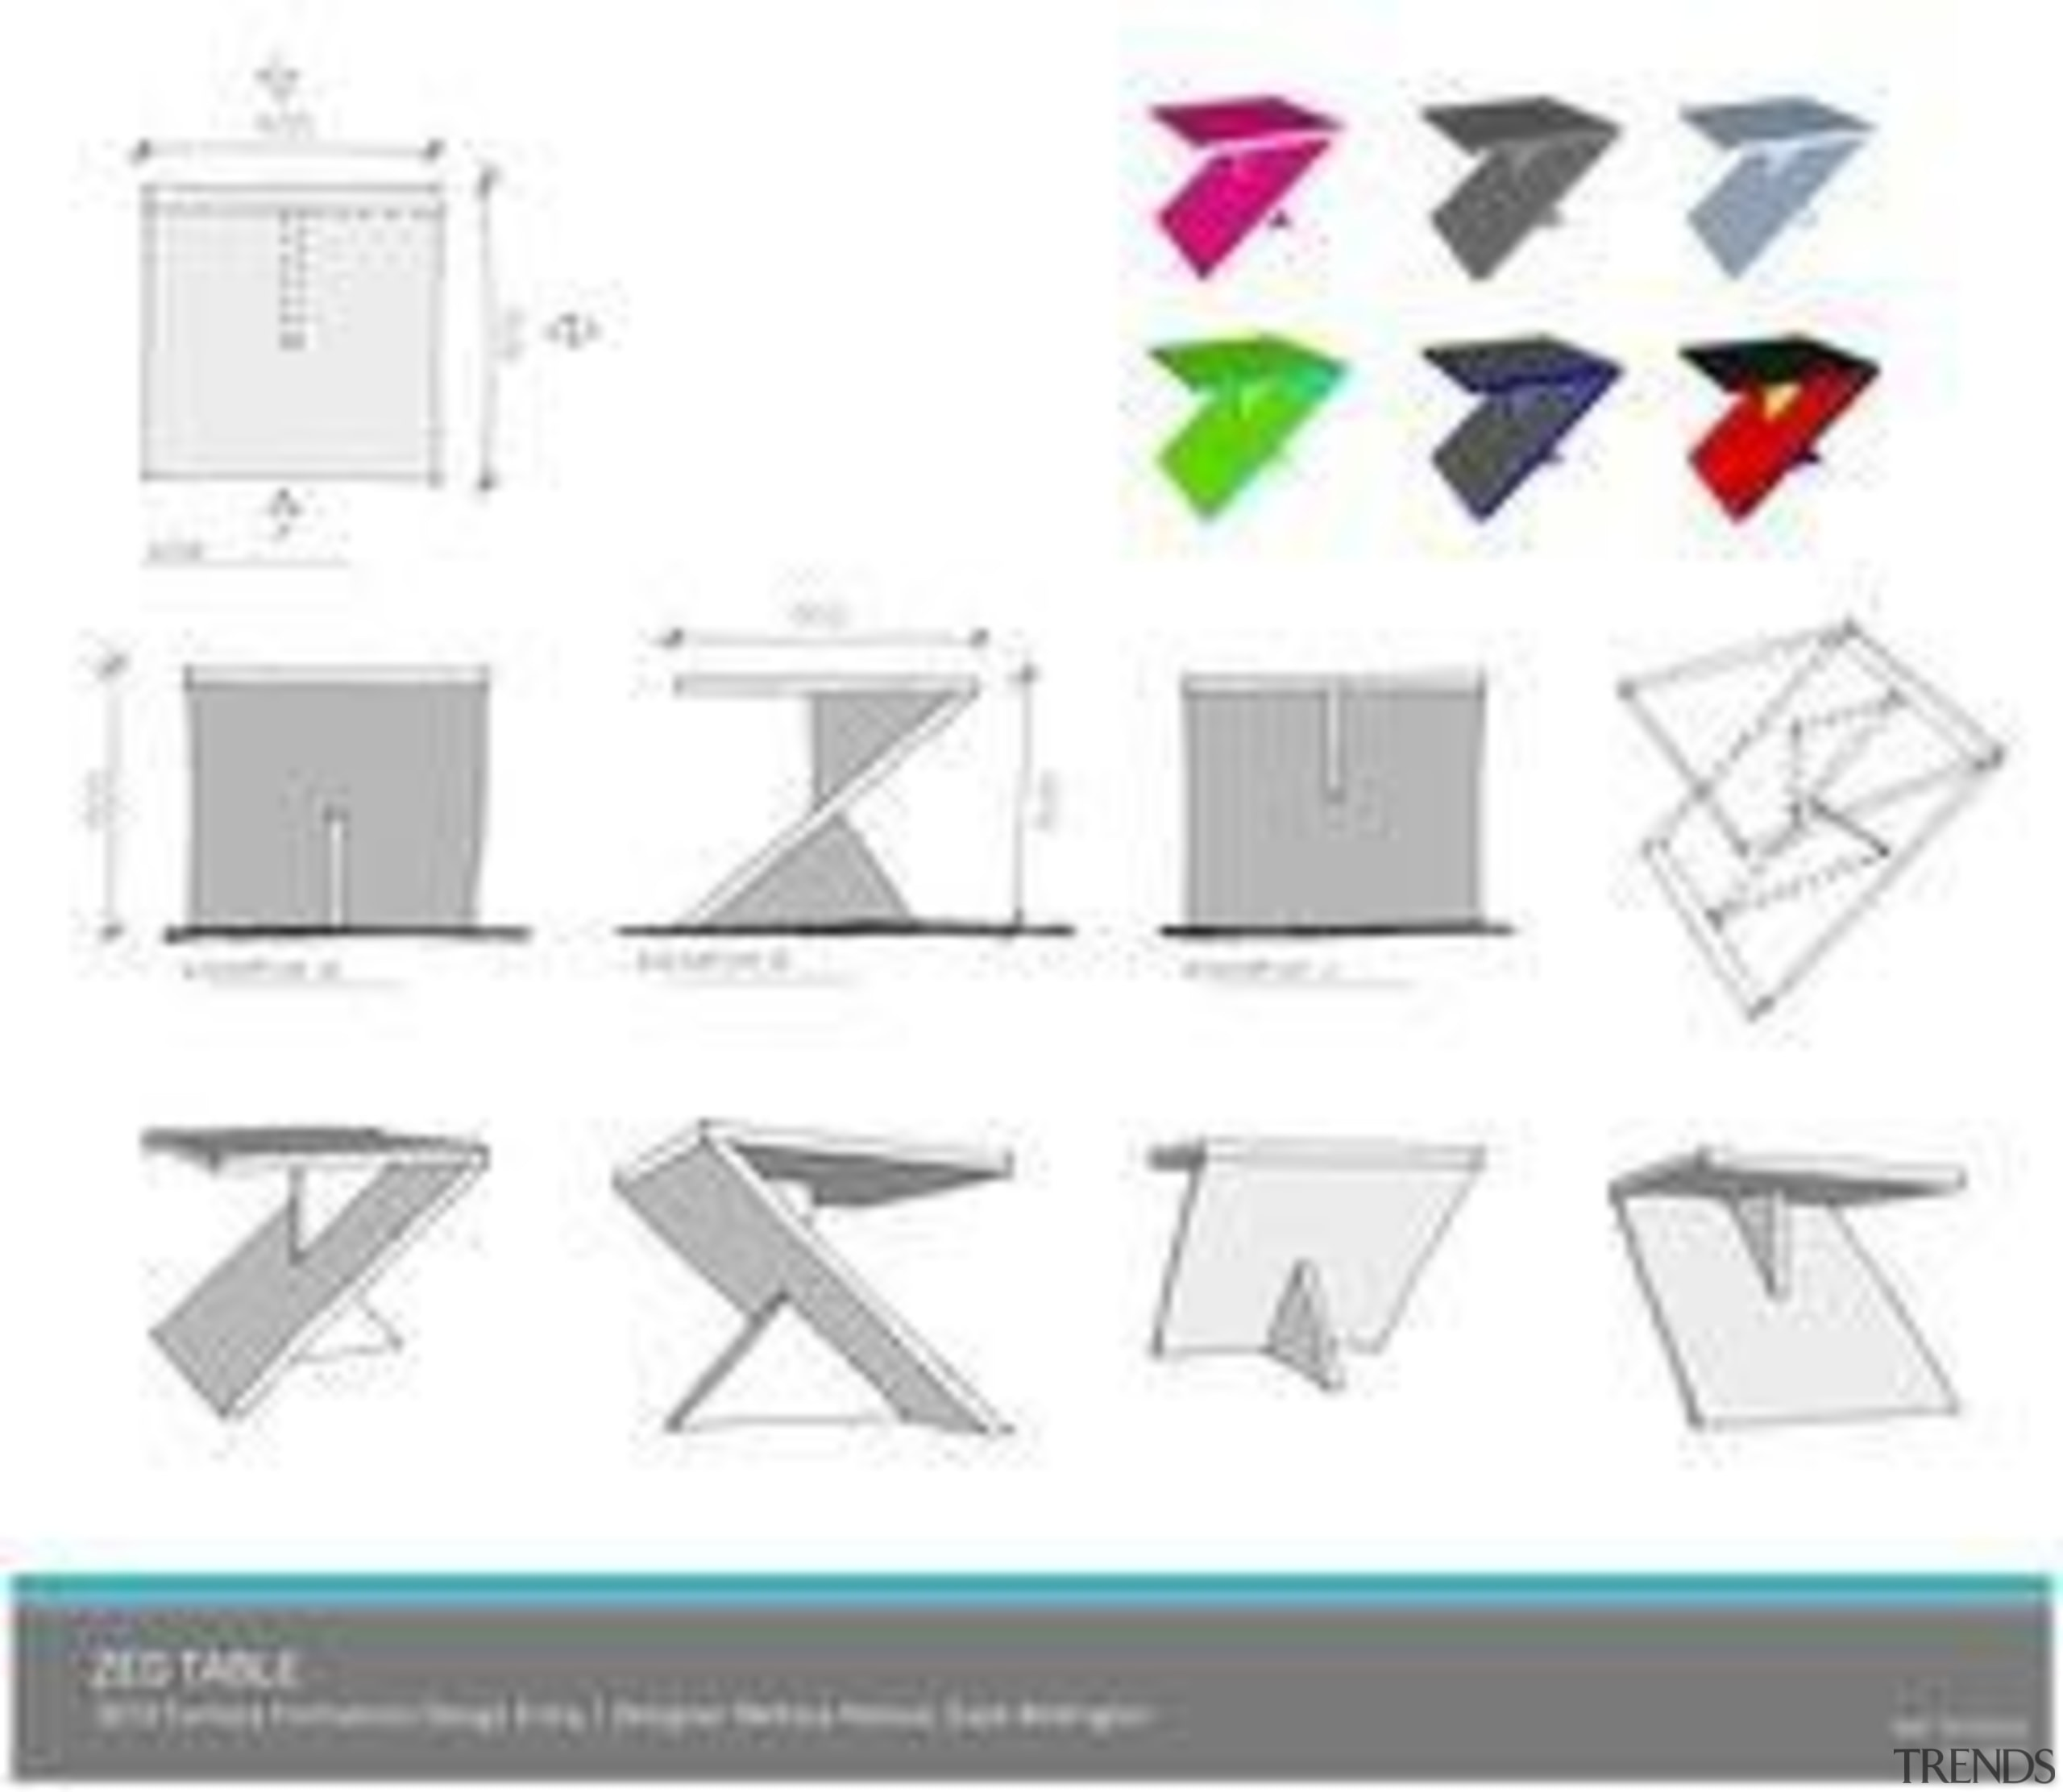 Melissa Robson - Zed Table - angle | angle, area, design, diagram, font, furniture, line, material, pattern, product, product design, square, structure, technology, text, triangle, white